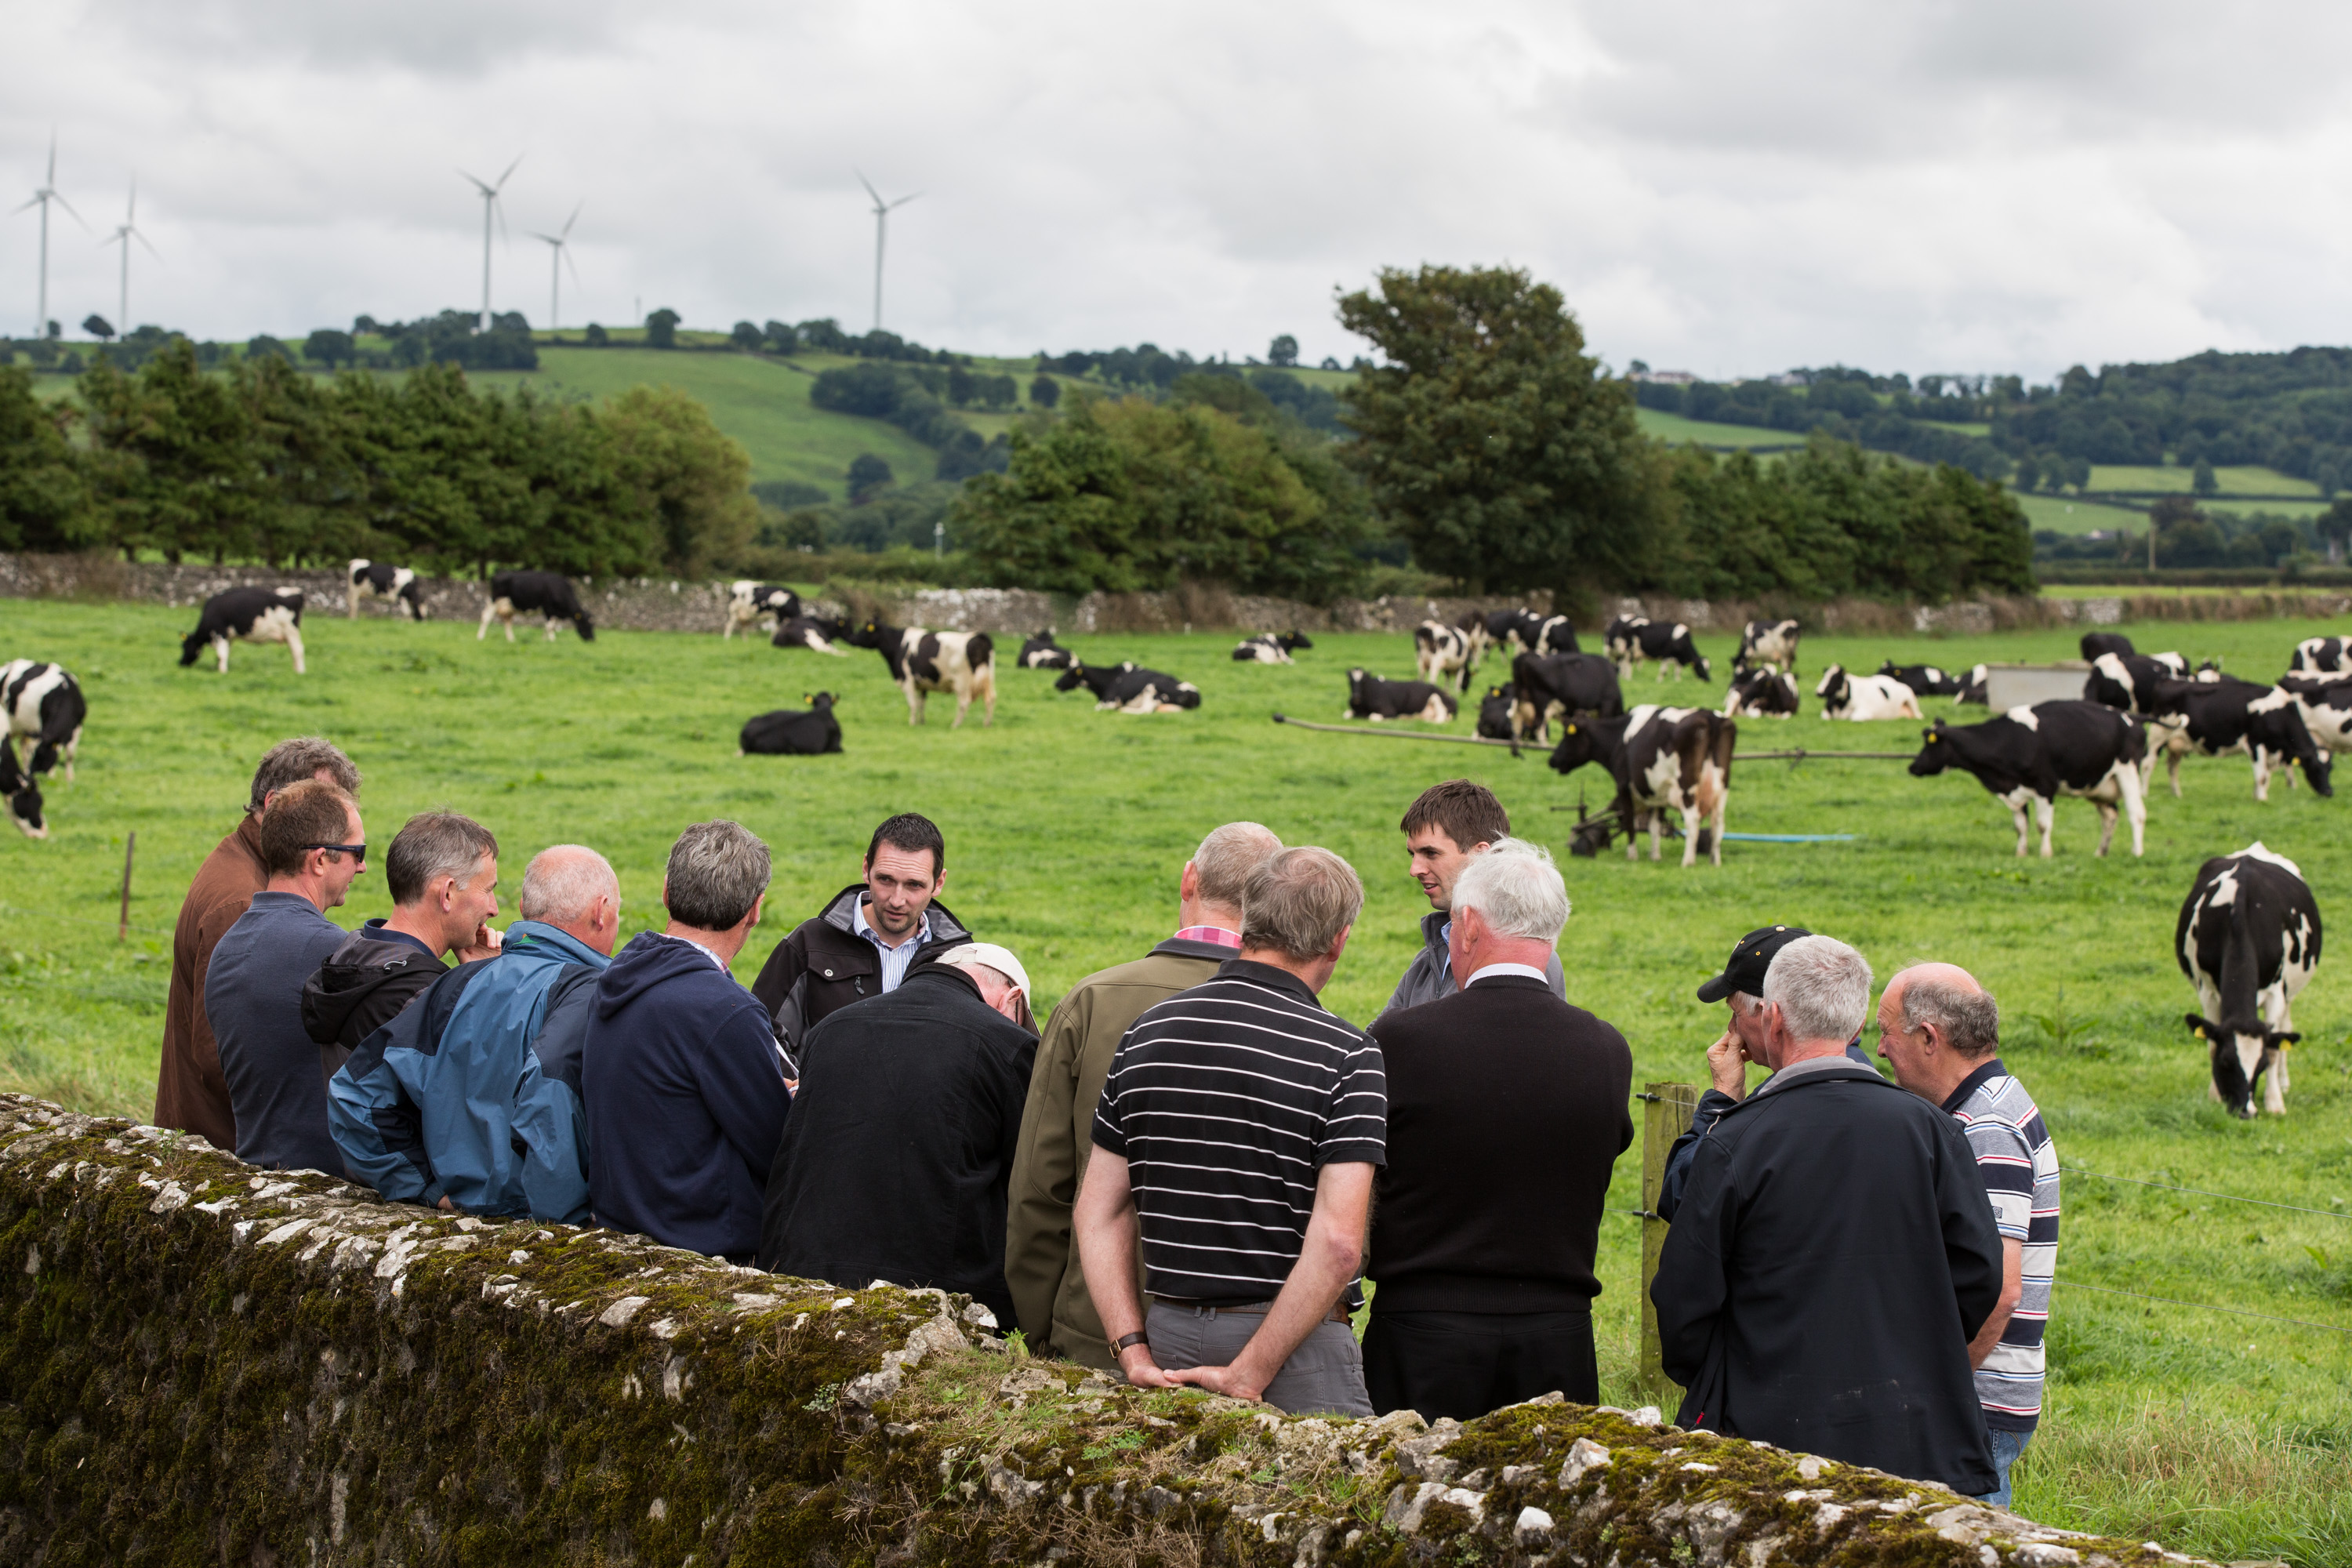 High turnout for Bord Bia and Teagasc Knowledge Transfer (KT) farm walk highlighting the value of Quality Assurance and Origin Green to farmers